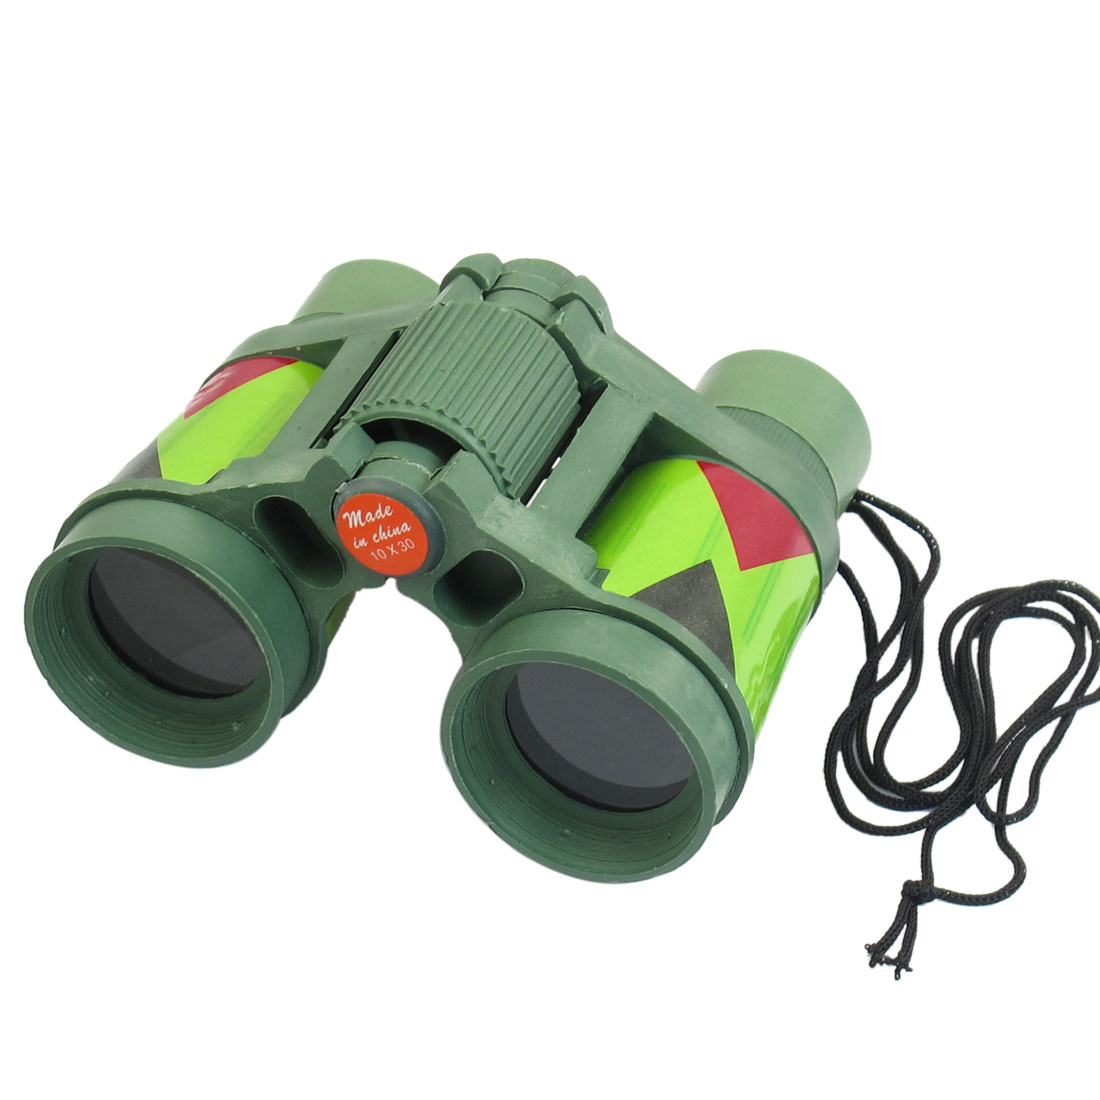 Camouflage Color Plastic 10mm x 30mm Binocular Toy for